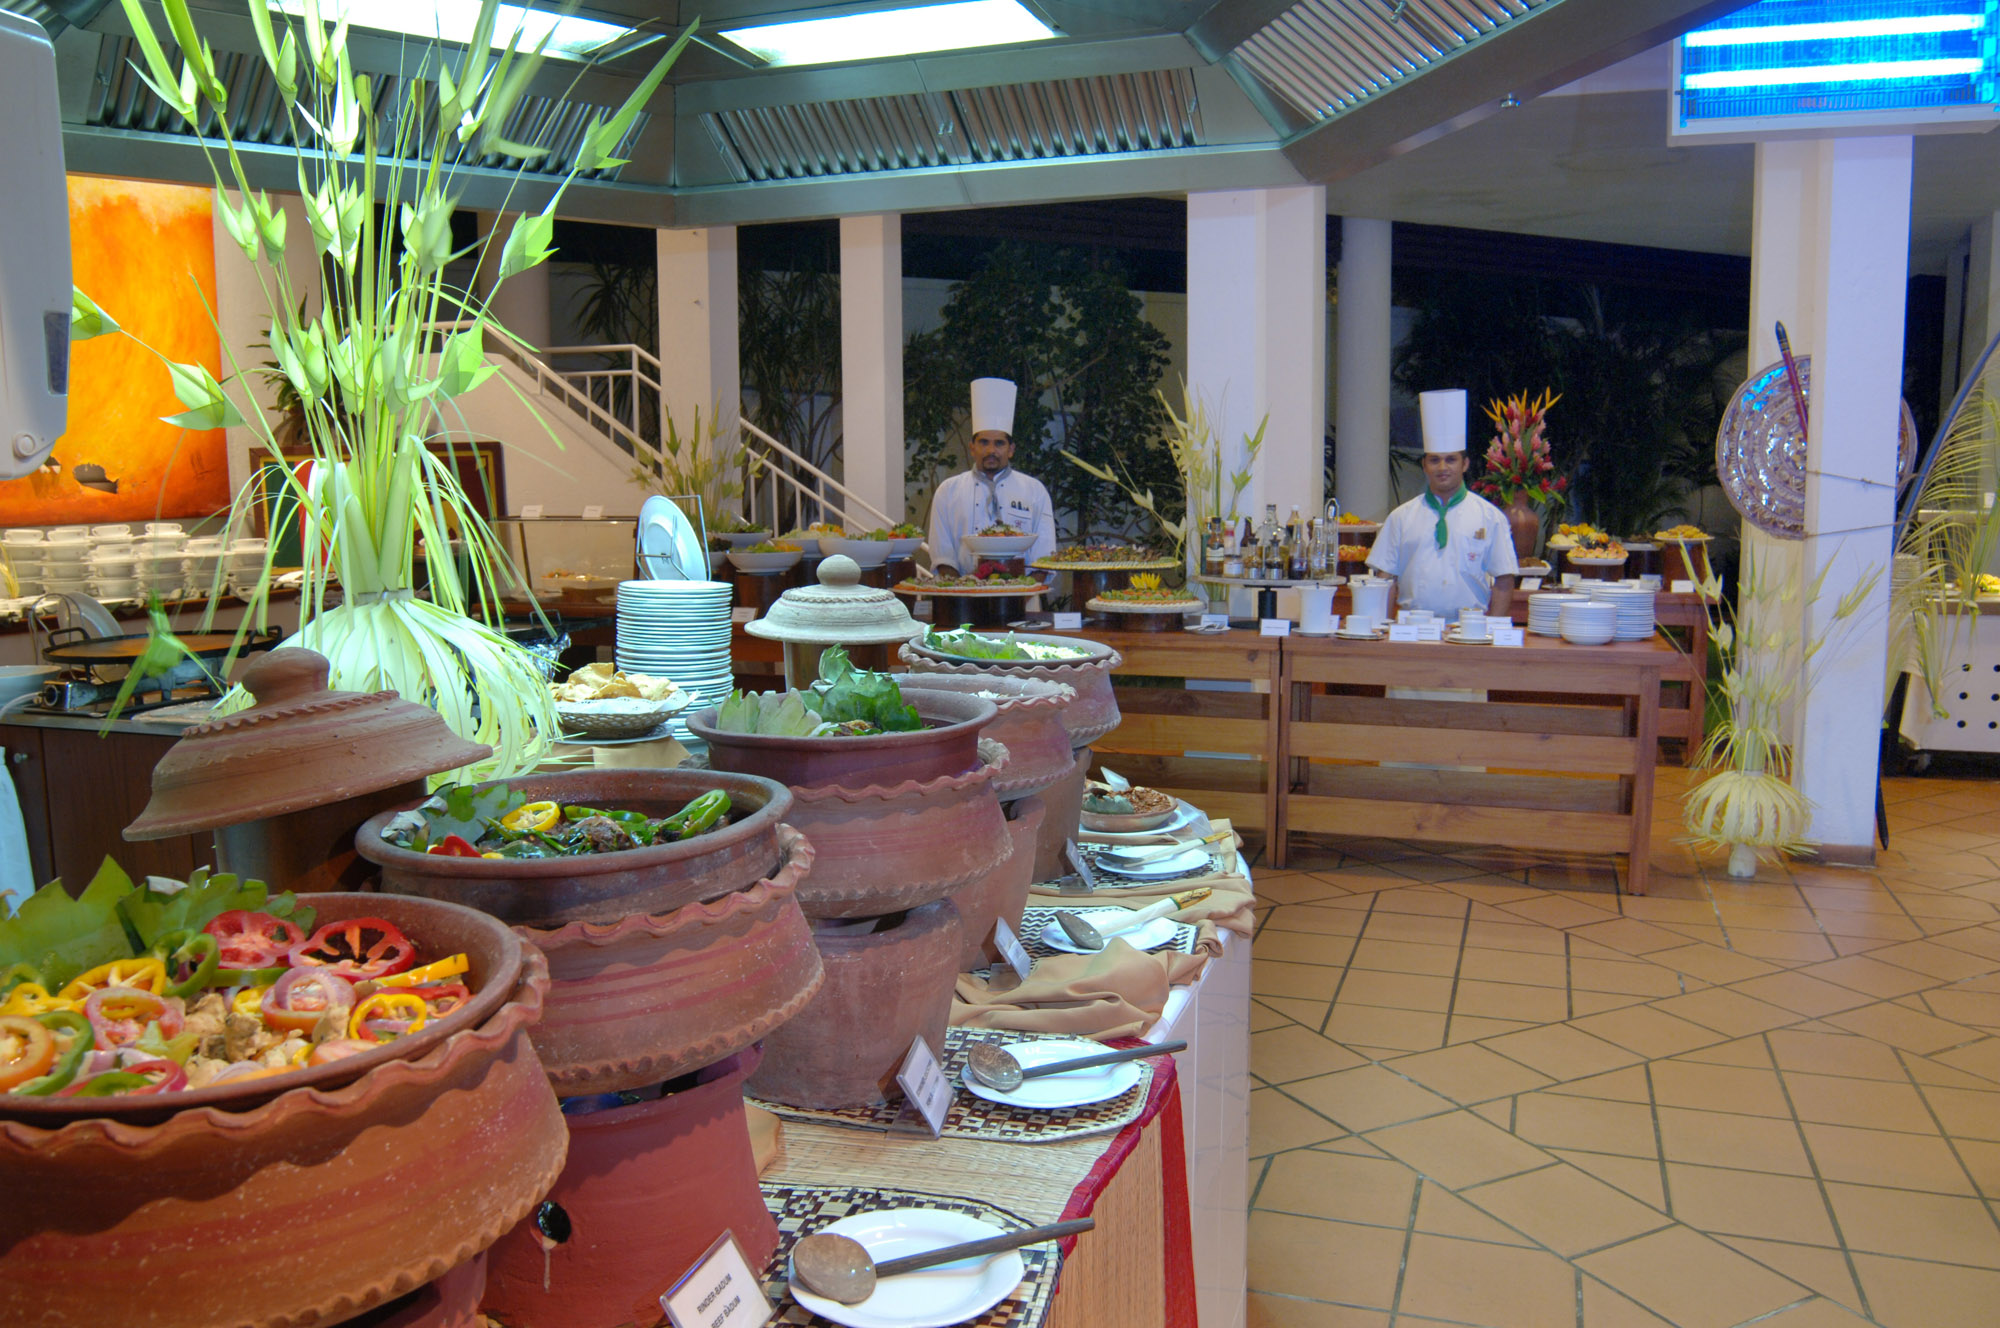 https://www.lankaprincess.com/wp-content/uploads/2014/12/BATAHIRA-RESTAURANT-New-Batch-13-81.jpg